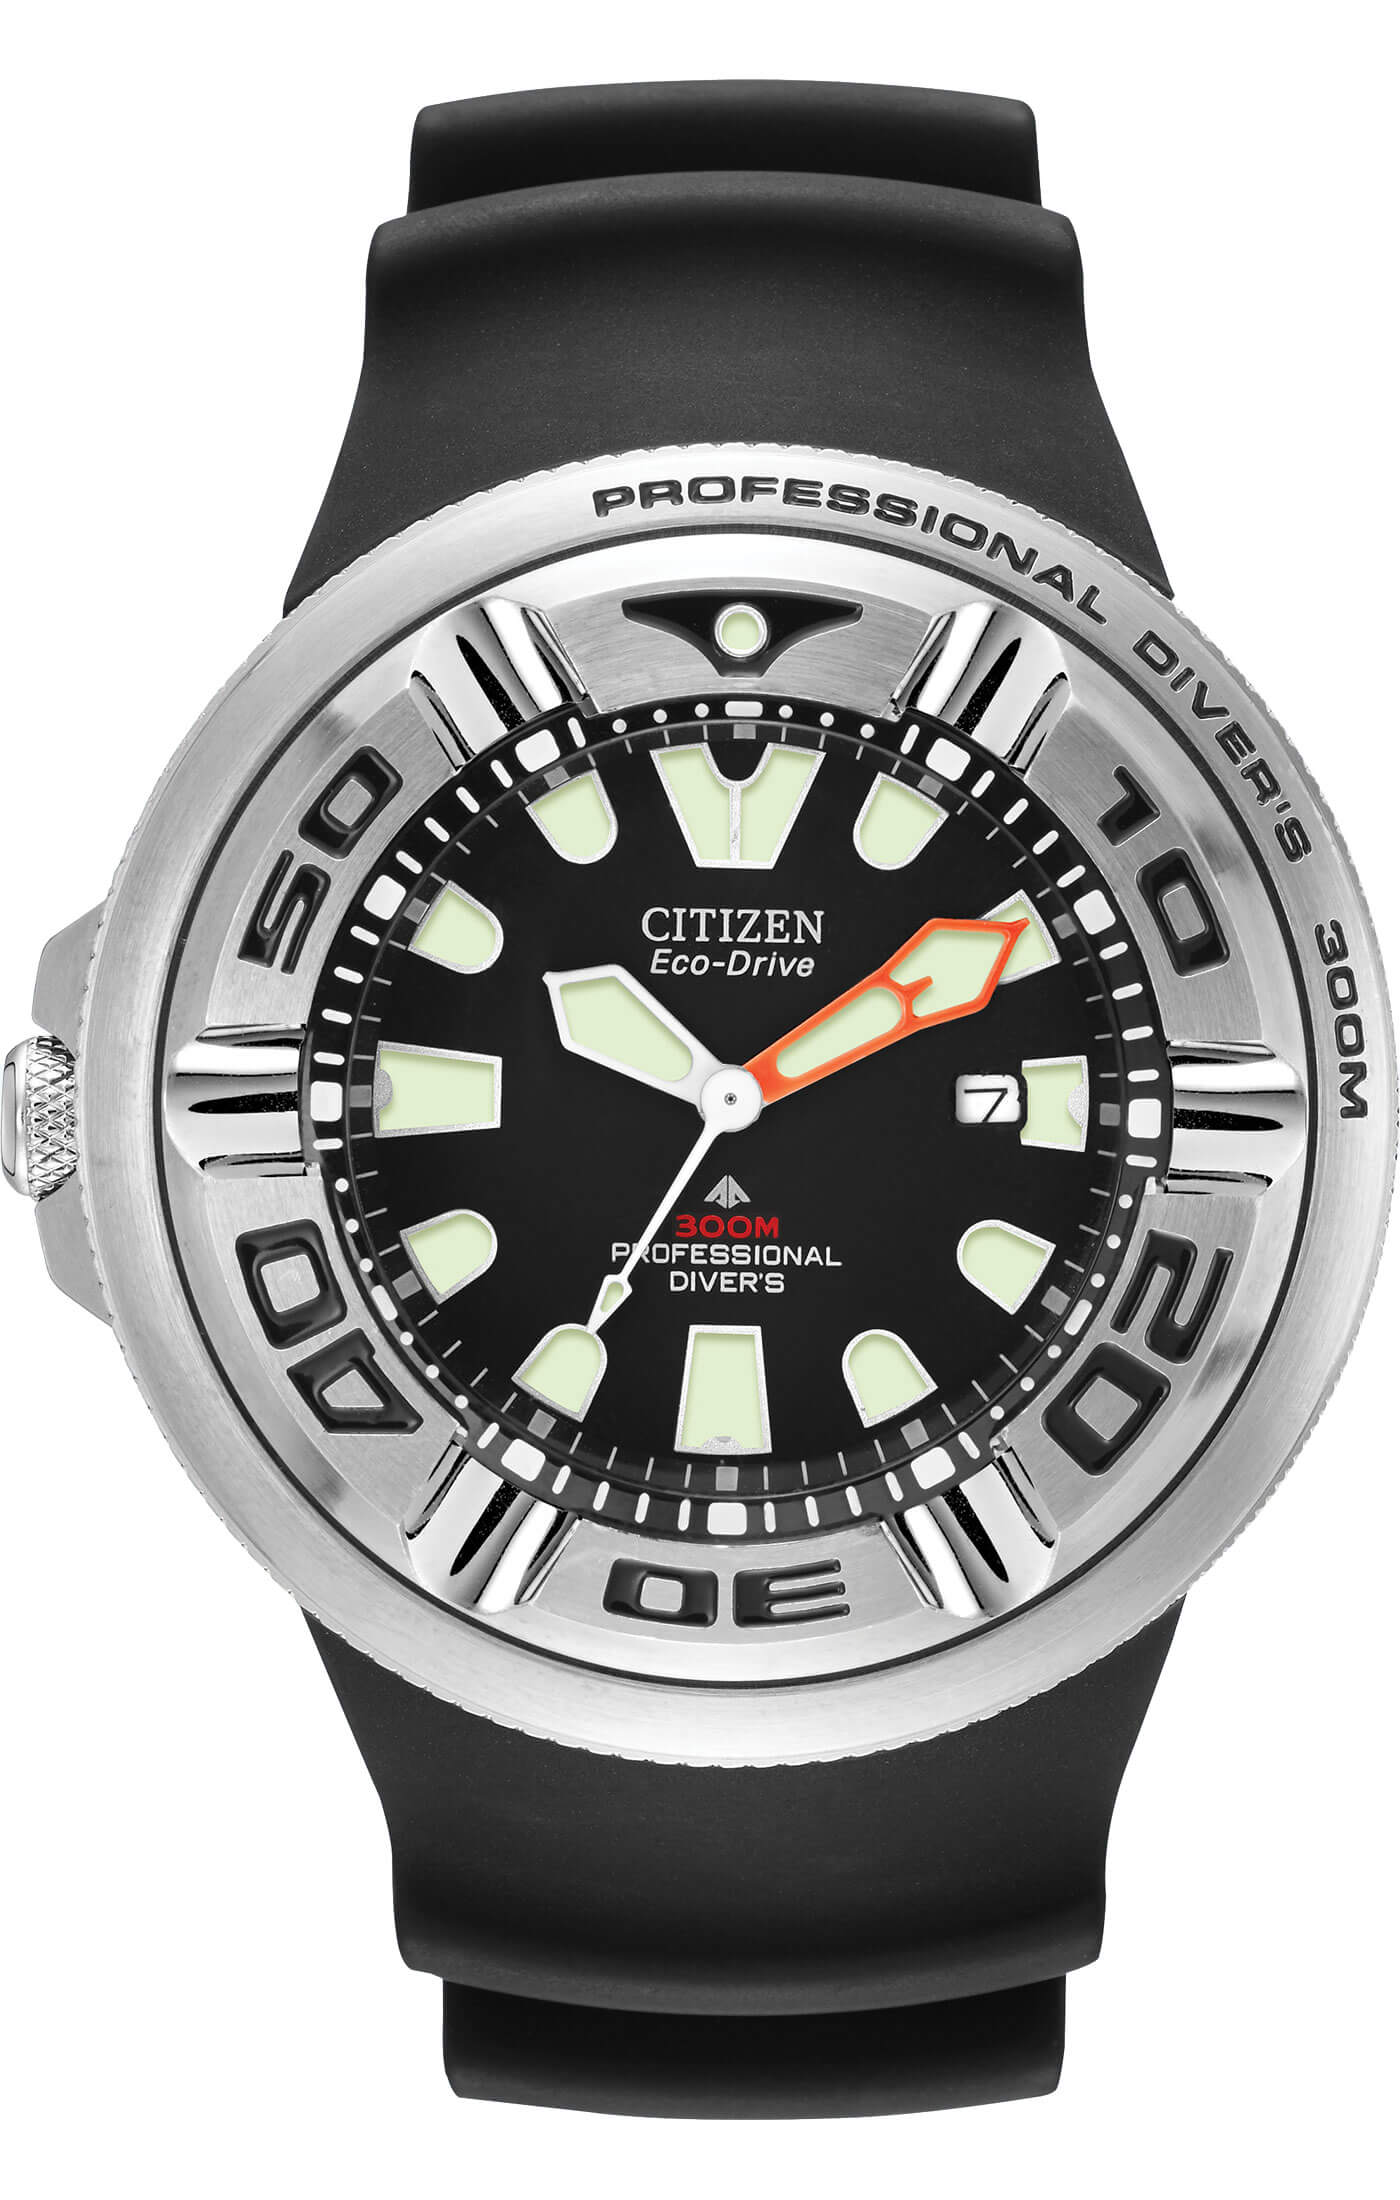 Citizen Ecozilla review